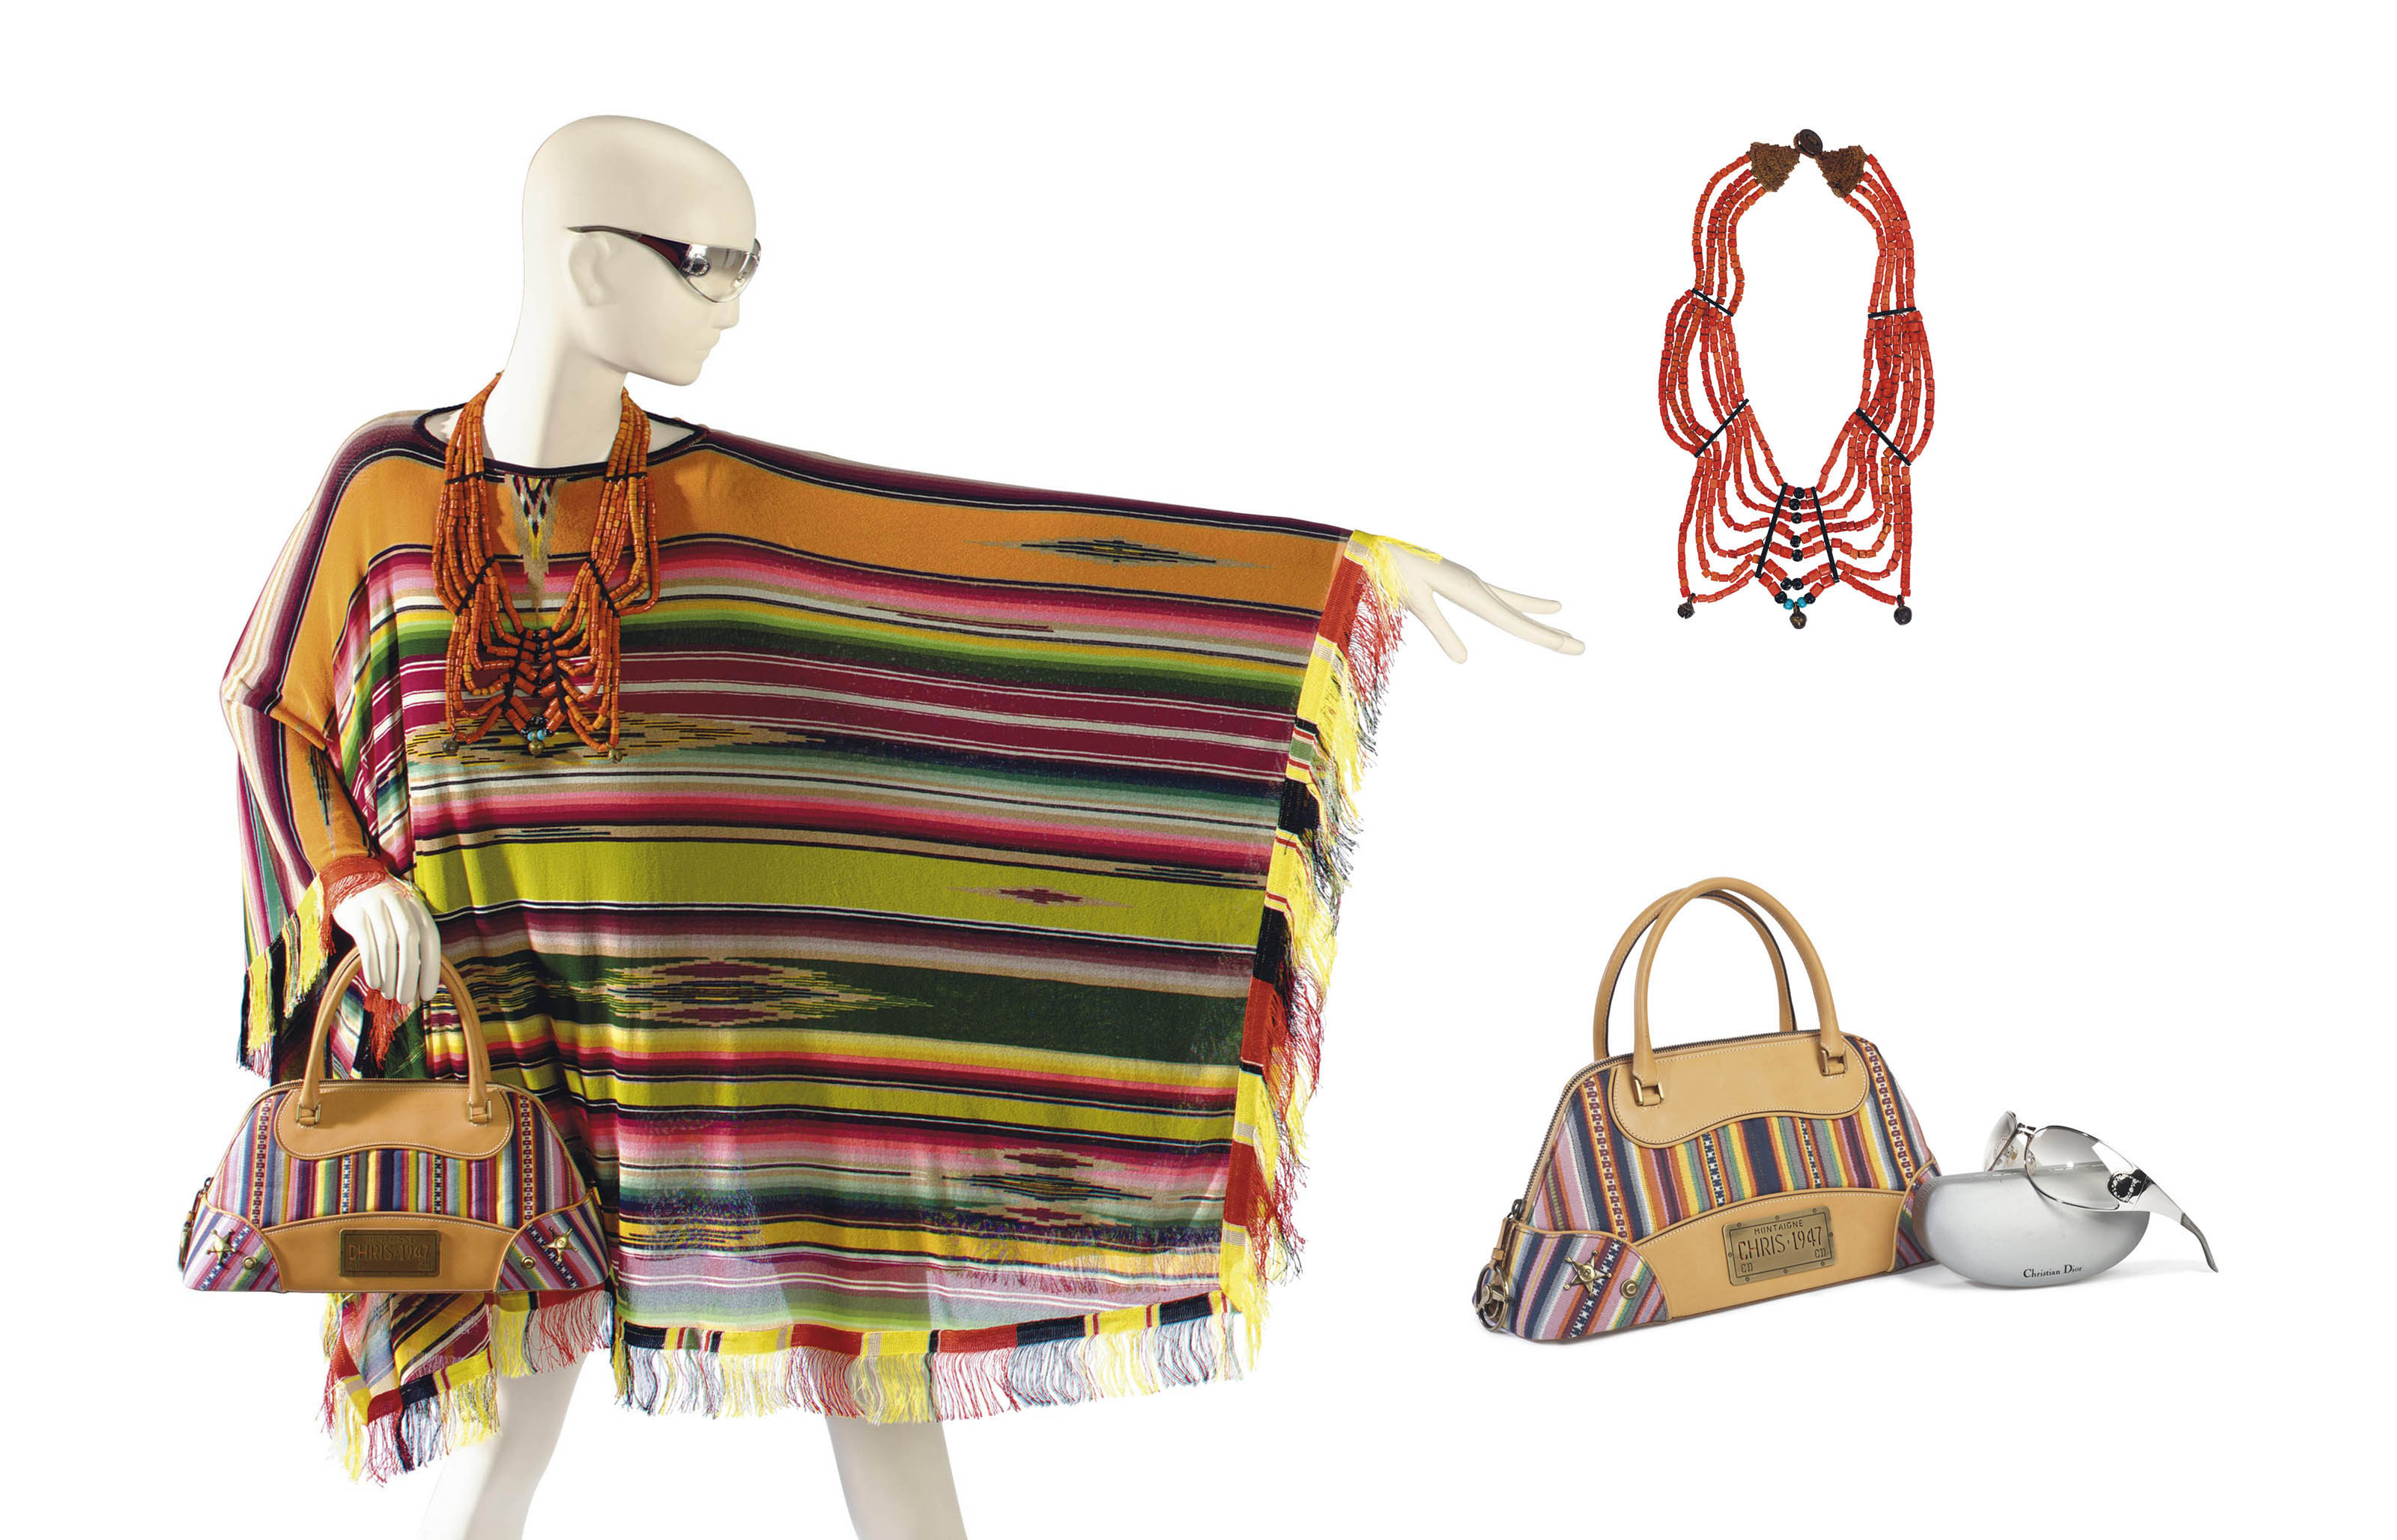 A GAULTIER PONCHO, A DIOR HANDBAG, SUNGLASSES AND AN ASSOCIATED TRADITIONAL FESTOON BIB NECKLACE